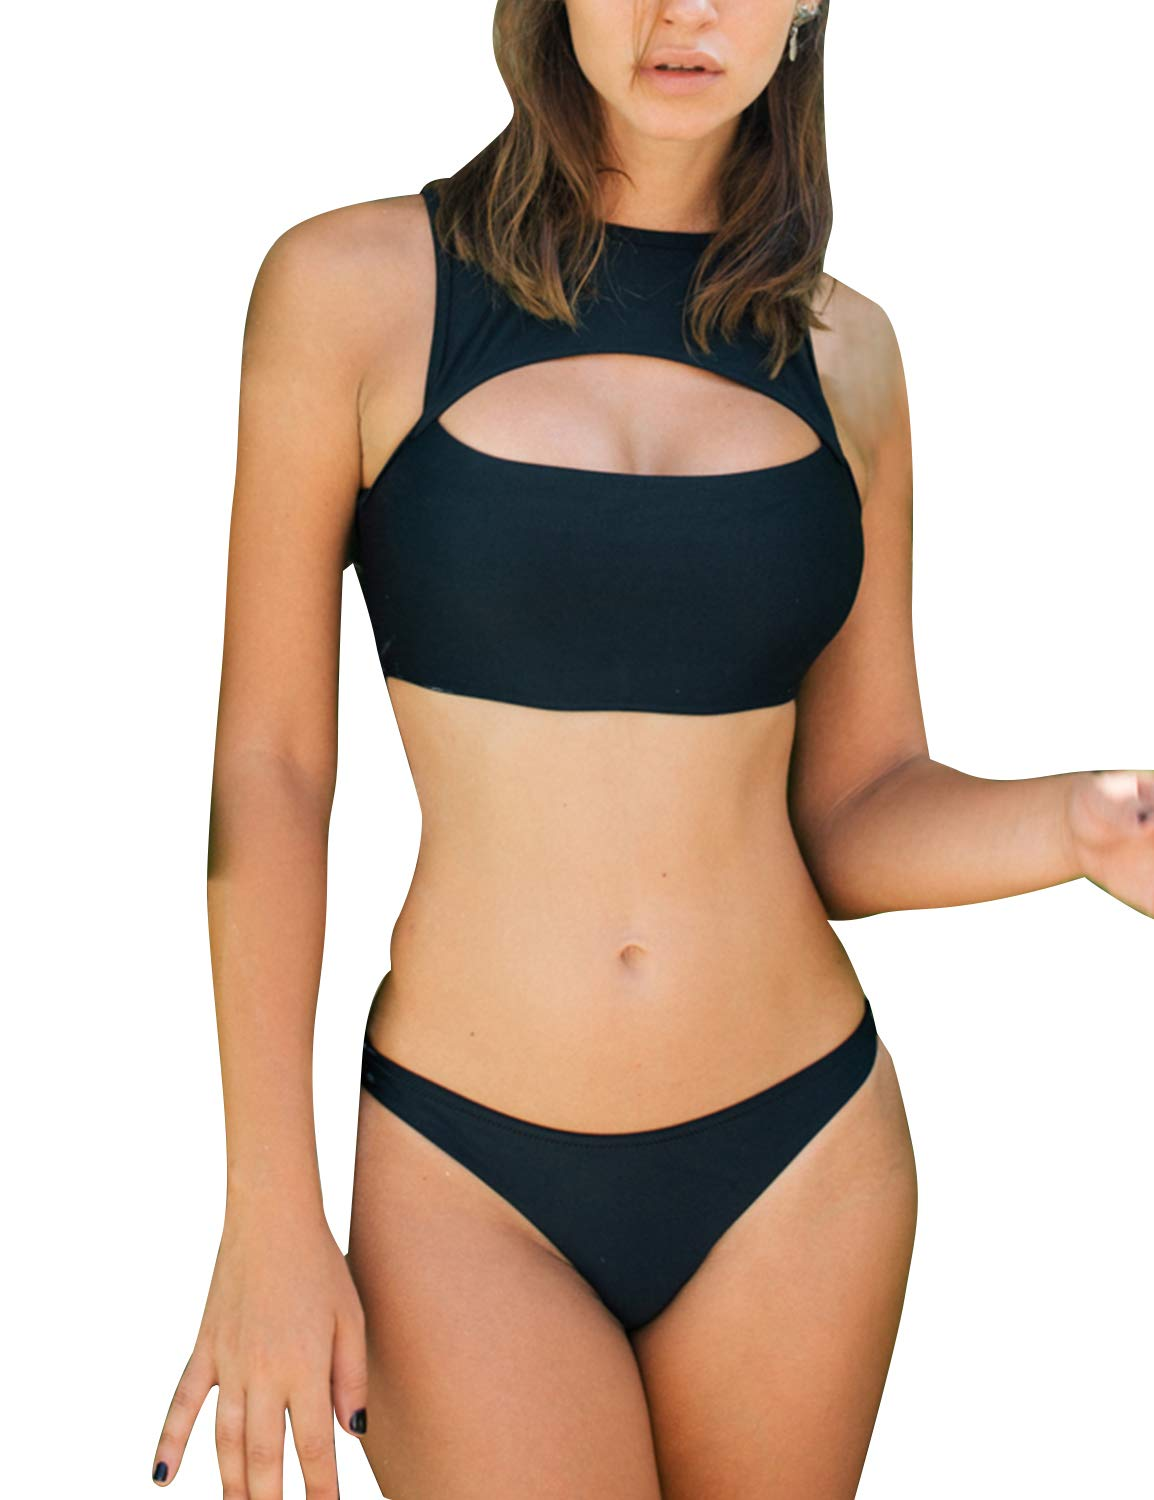 MAY Womens Cutout Bikini Set High Neck Open Back Two Piece Swimsuit High Rise Thong Cheeky Swimwear Black